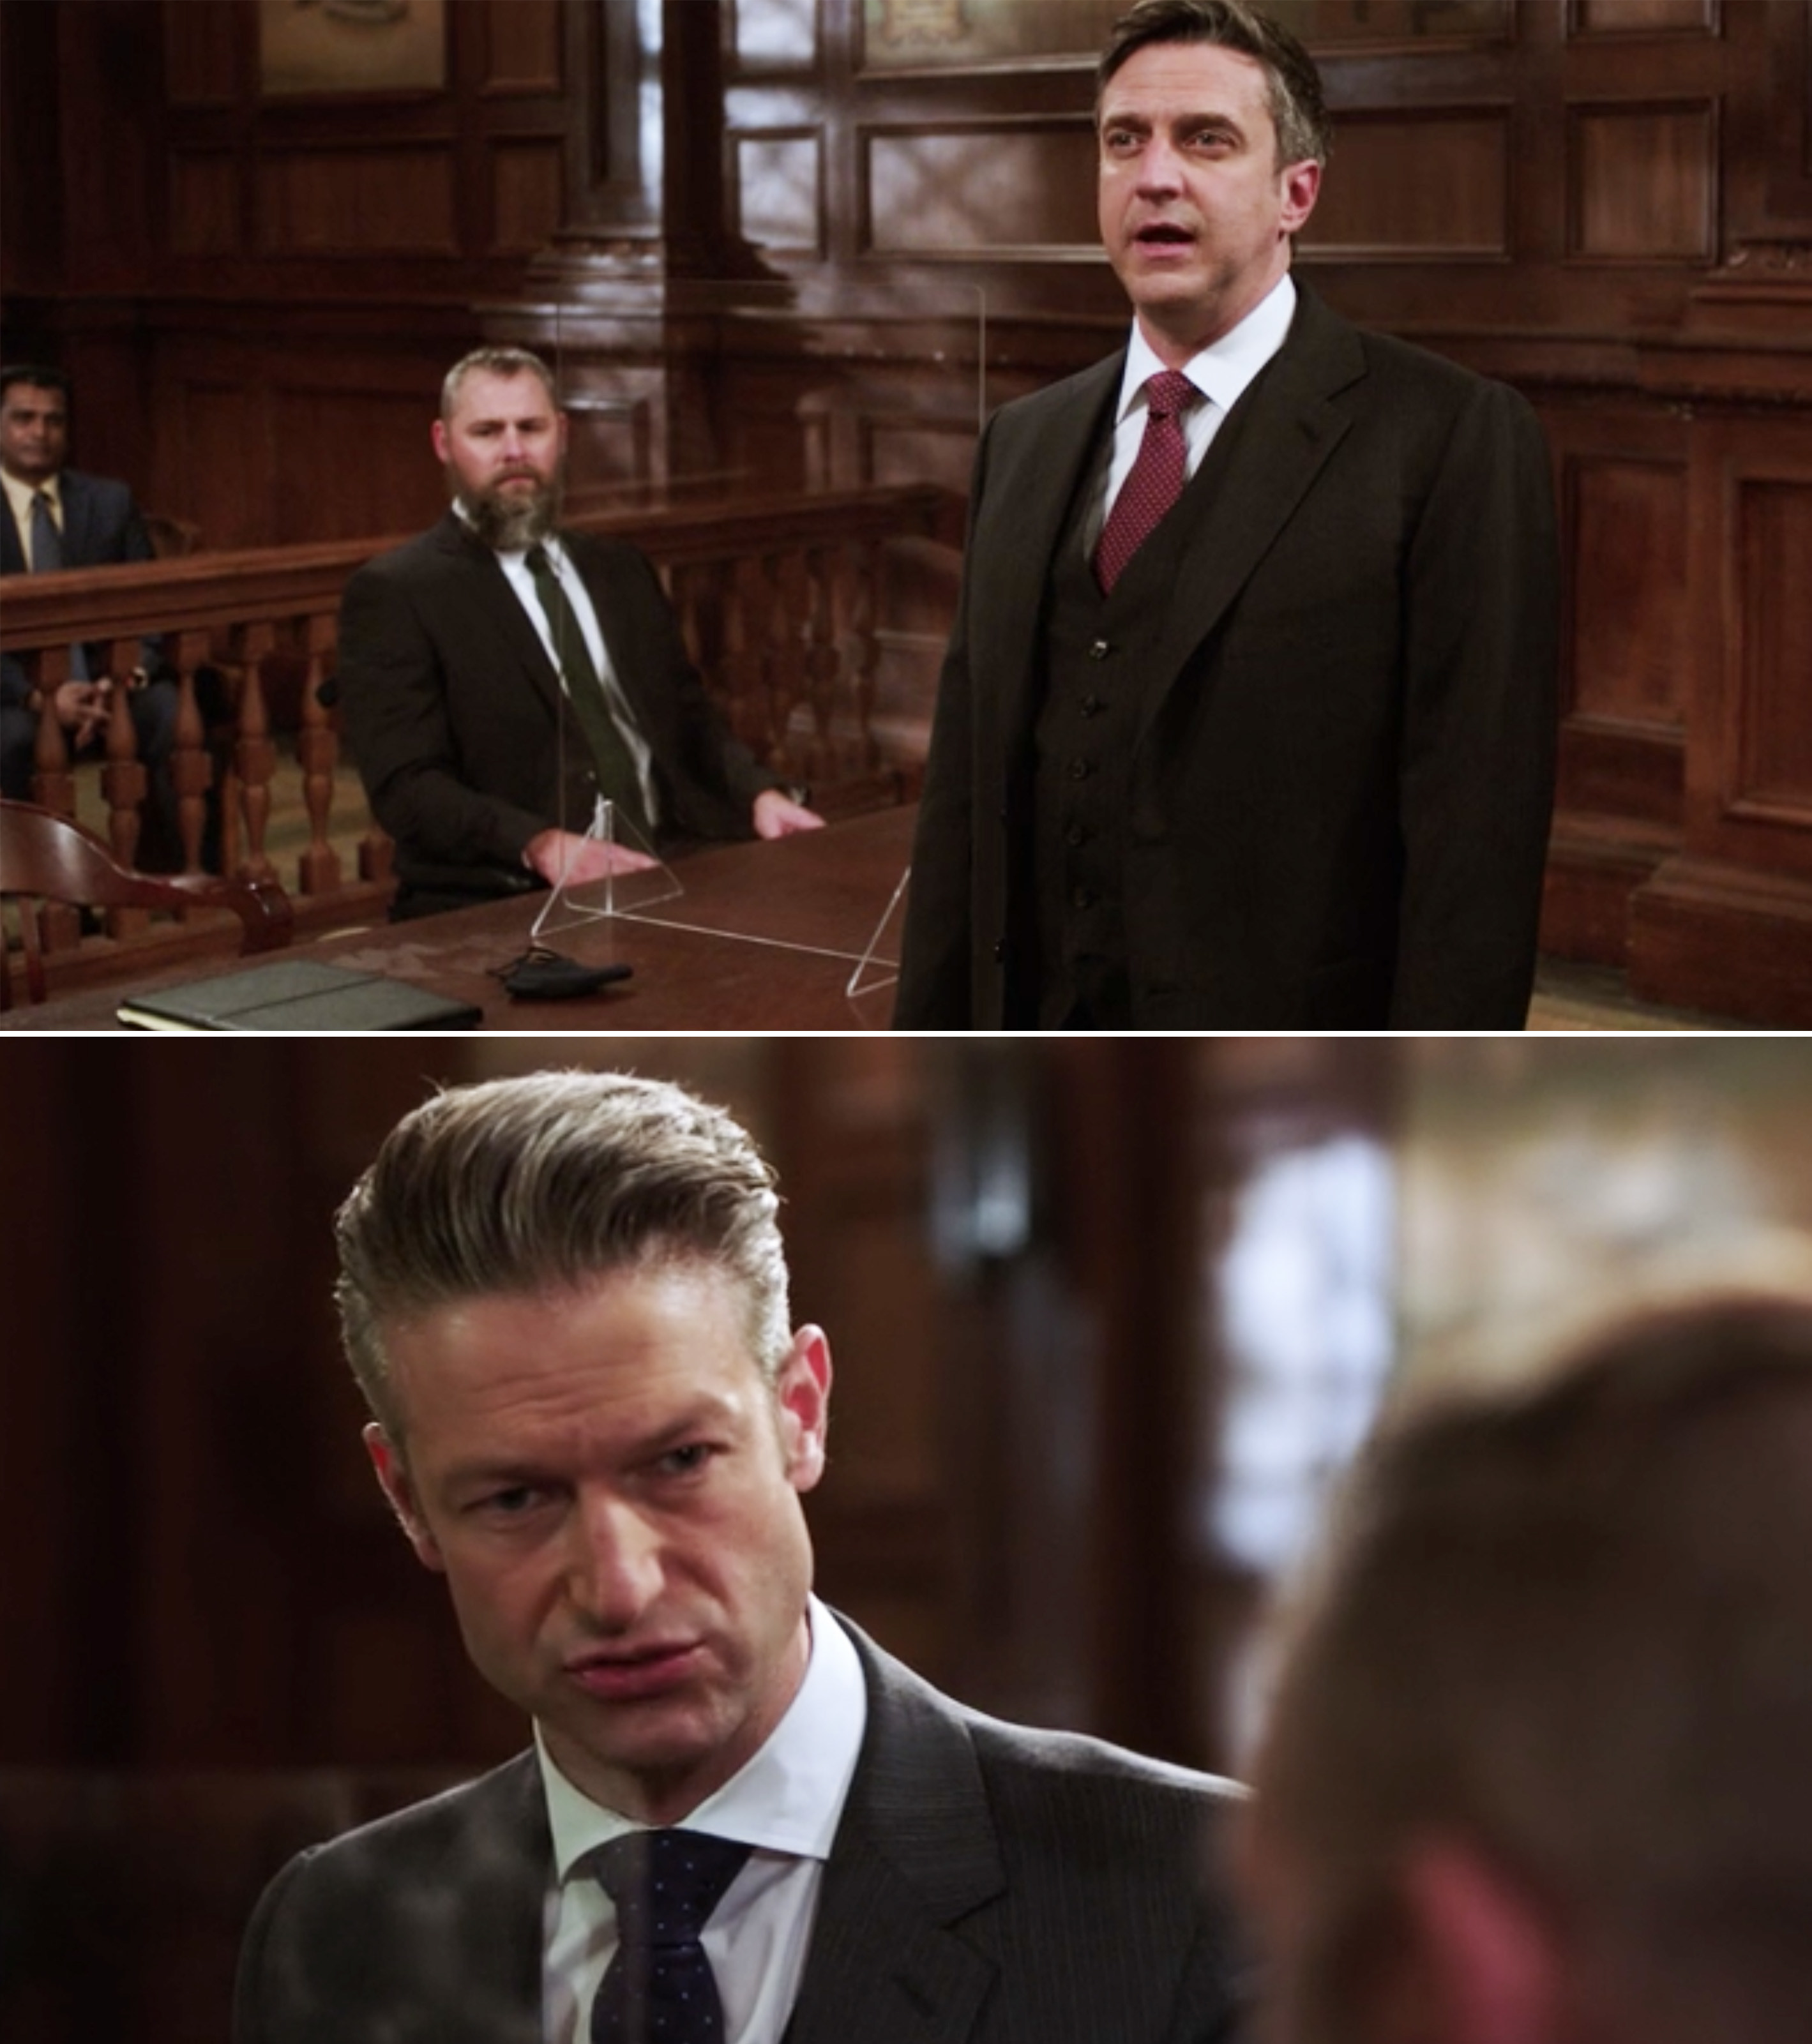 Barba and Carisi in court together